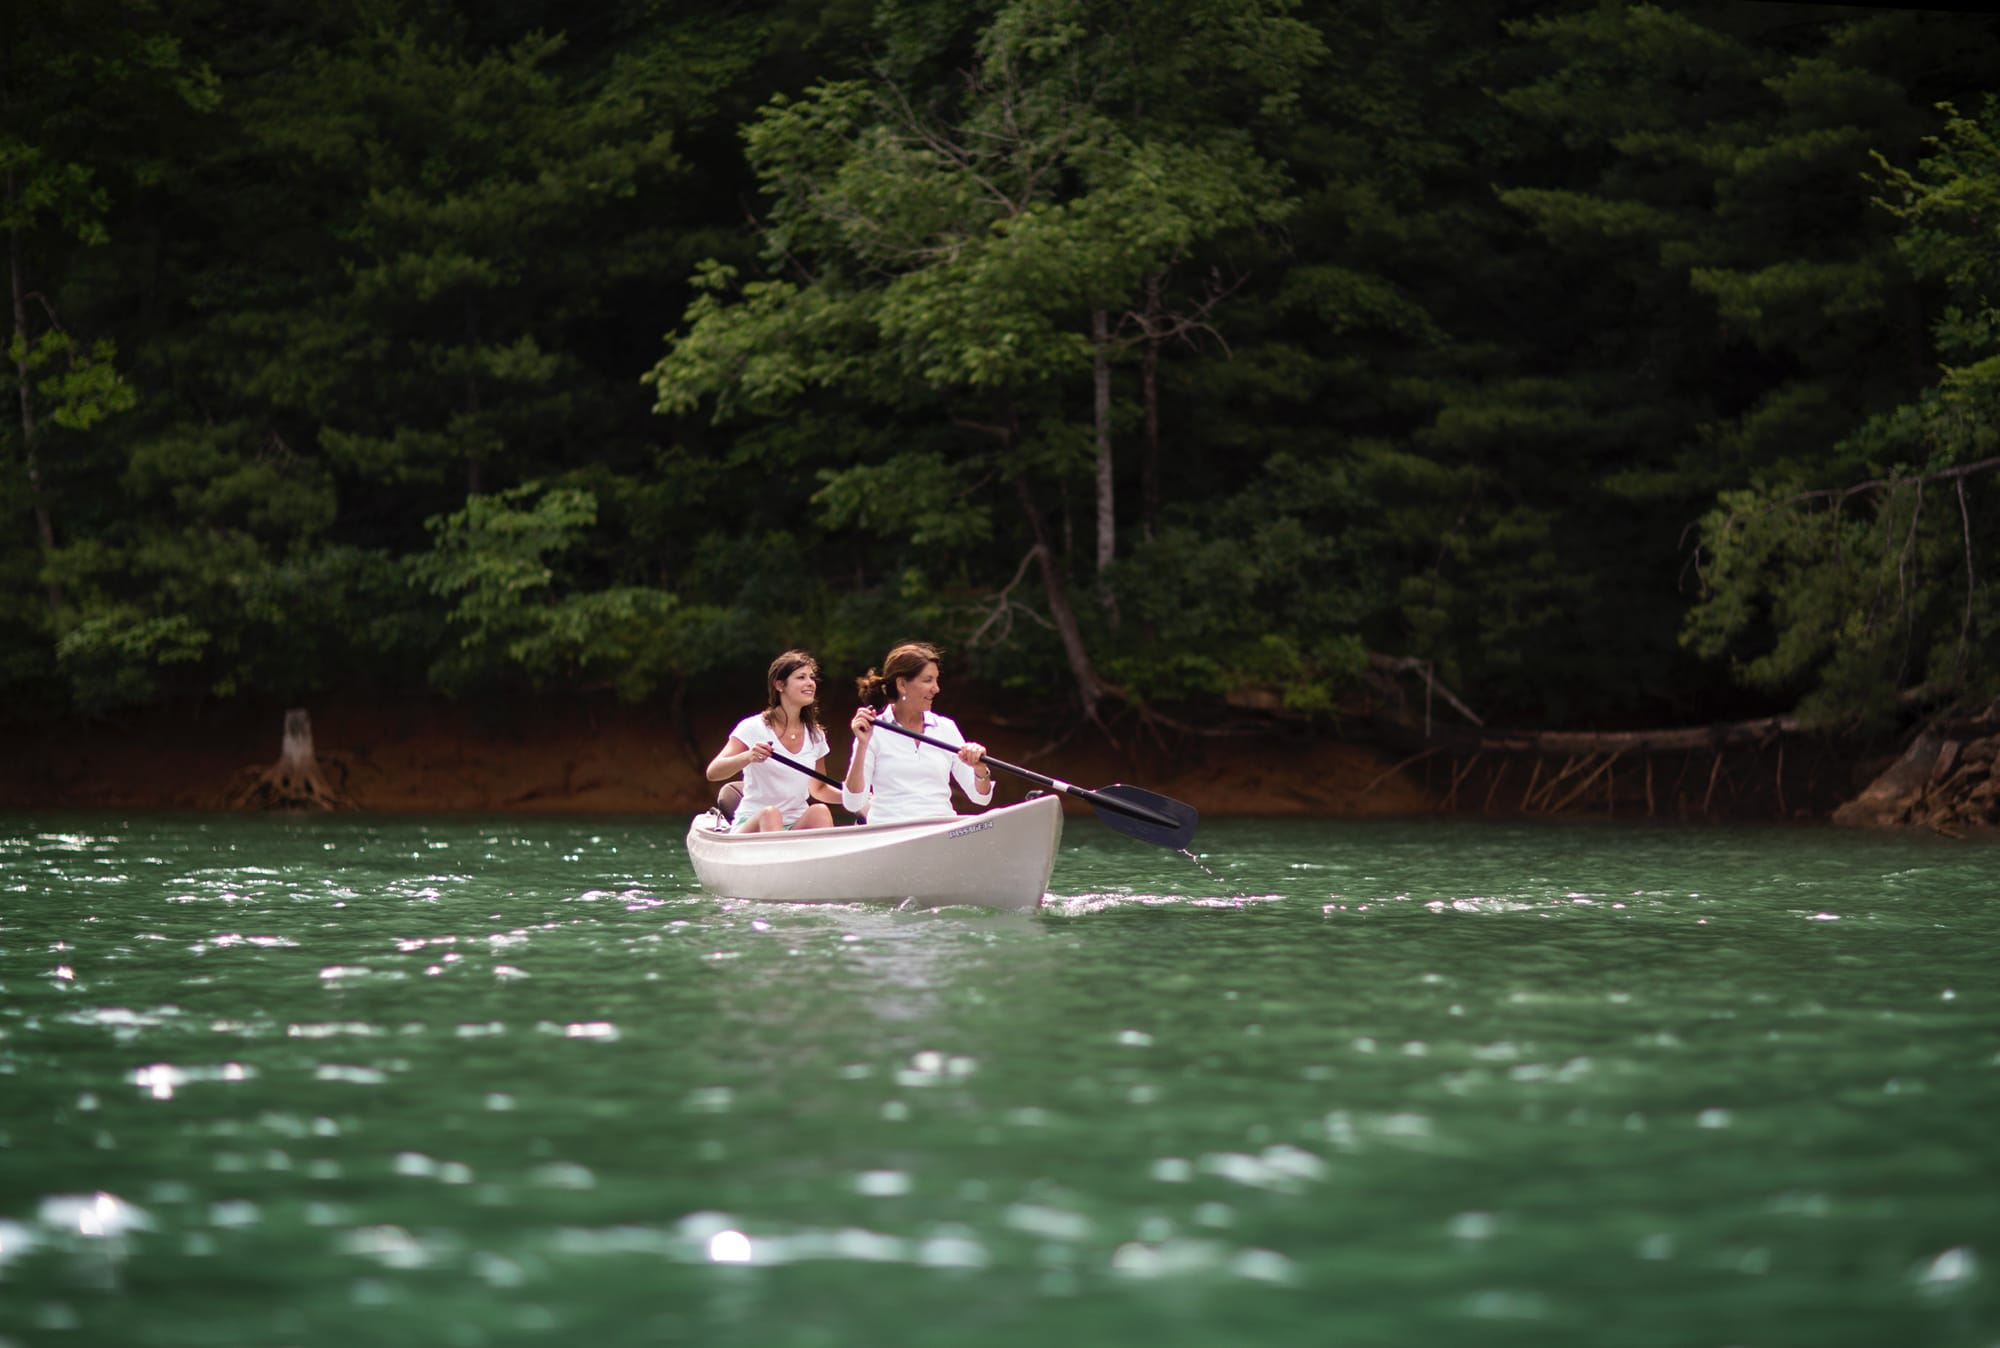 Canoeing on Lake Keowee